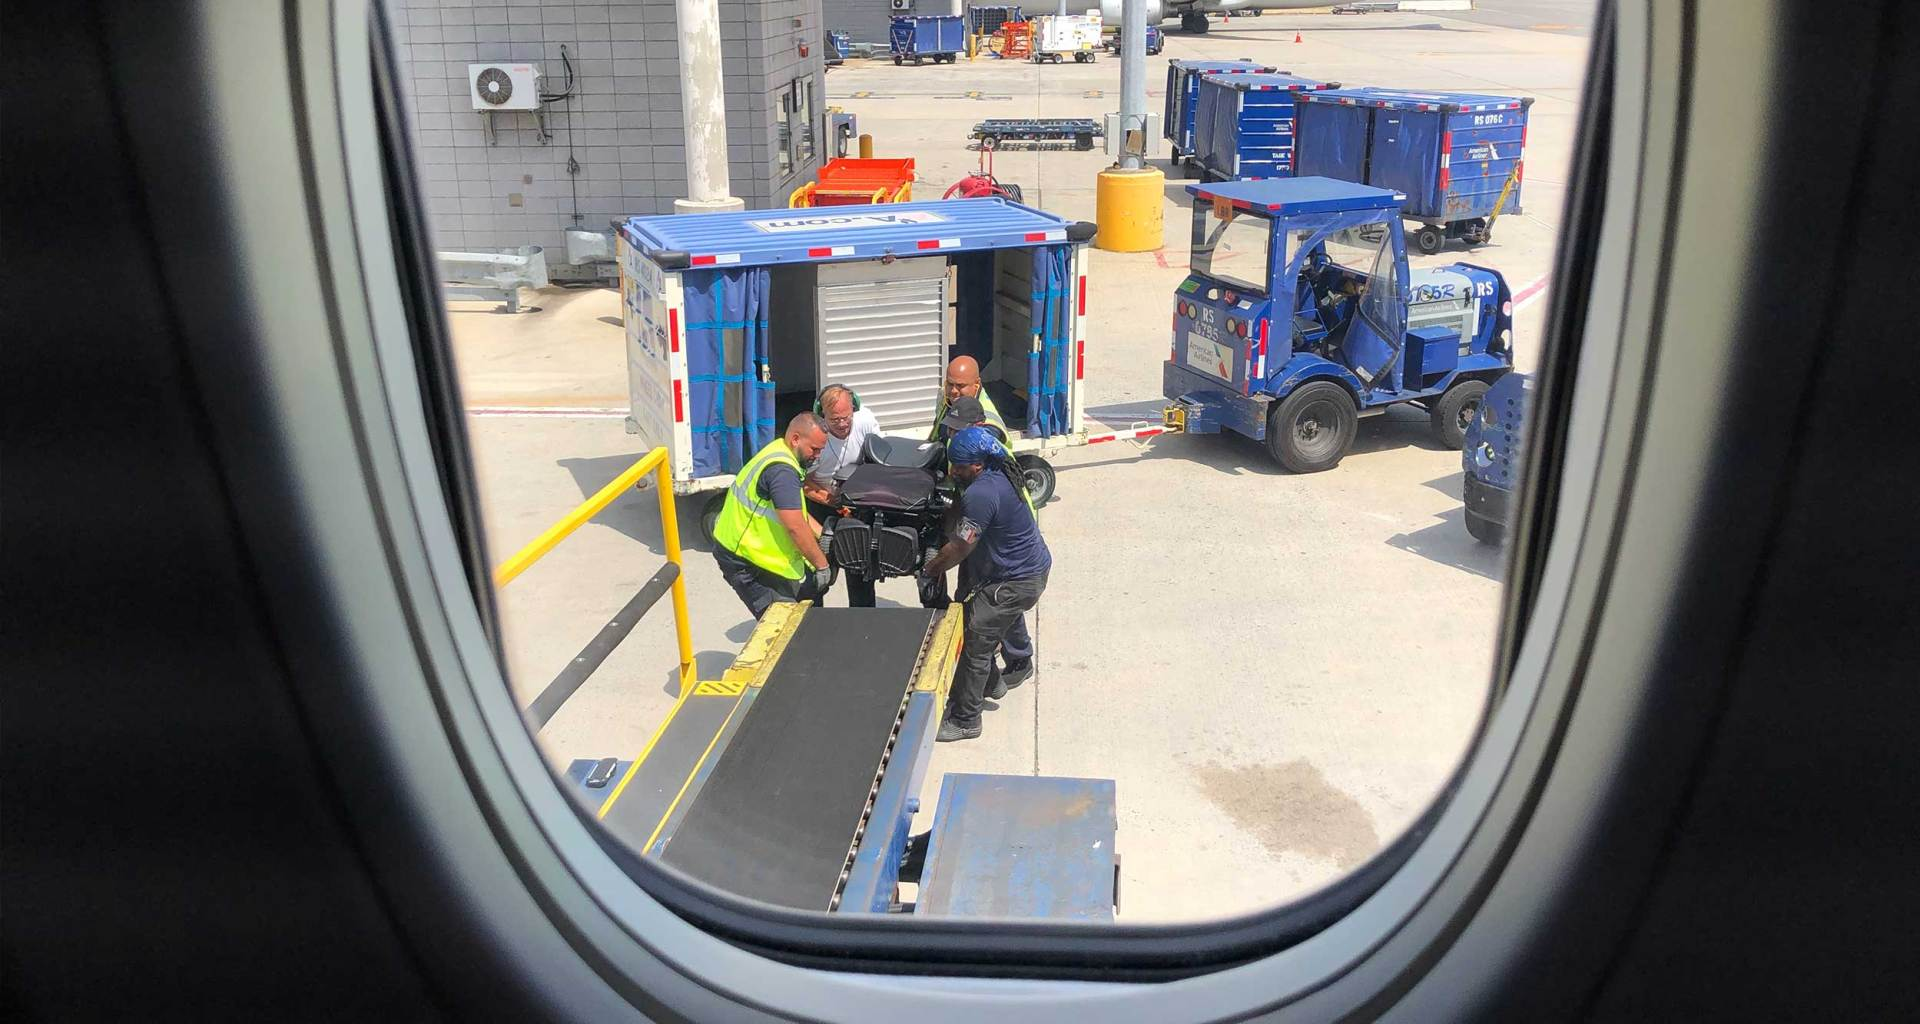 Airline staff loading wheelchair on airplane.